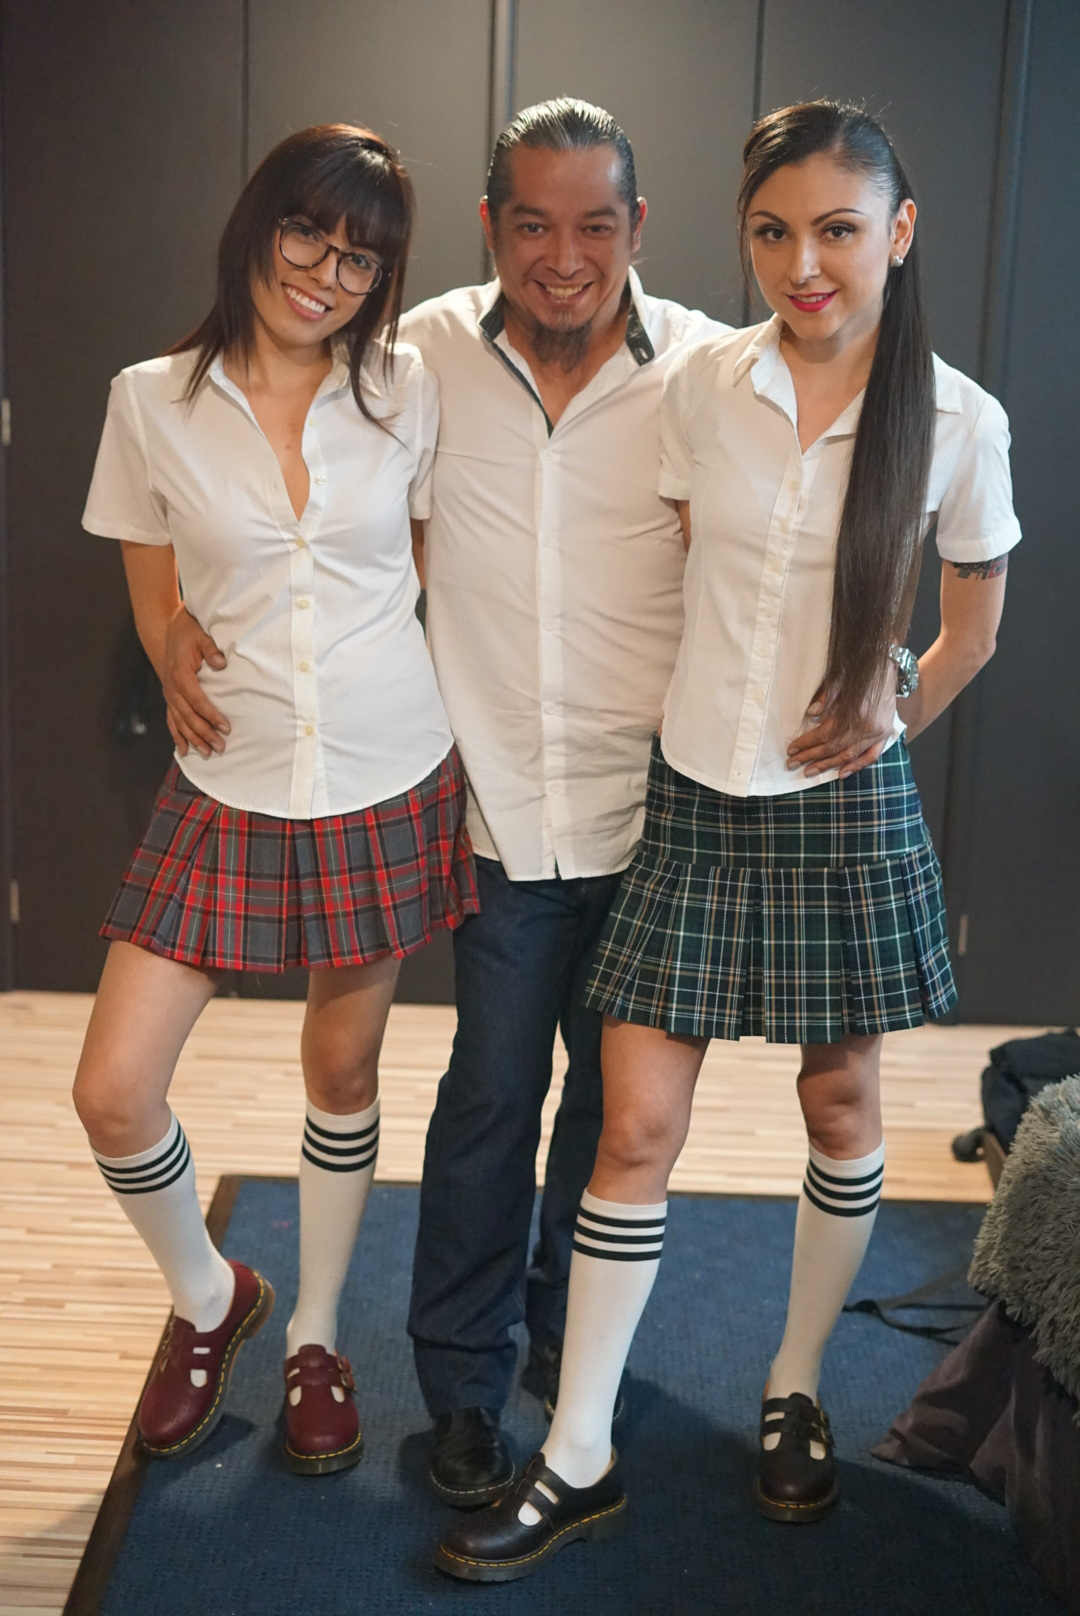 Lucy pictured with Rodrigo and Melin pictured in school uniform. MONTERREY CITY, MEXICO: THIS COUPLE married ONE WEEK AFTER THEY FIRST MET and have since invited a woman TWENTY-THREE YEARS his junior to join their relationship. On May 14, 2012, marketing entrepreneur, Rodrigo Contreras Diaz (41) from Monterrey City, Mexico, met his now wife, nutritionist, Melin Velasco Reyes (31) from Guadalajara City, through a mutual friend. Sparks flew instantly and Rodrigo ended up proposing to Melin that same day, to which she agreed. After just a week of preparations, they got married on May 21, 2012. Despite only having eyes for her, he explained to her early on in their relationship that he didn?t want a traditional monogamous relationship as he lived an alternative lifestyle and was open to a polyamorous relationship, which she accepted. For four years they focussed on their relationship then re-visited their exploration of other forms of partnerships and searched for another woman to join them in their union. On April 27, 2016, whilst they were both at a bar, they met one of the waitresses, Lucy (18), who was in high school at the time. Initially Lucy was shocked when Rodrigo began flirting with her in front of Melin, but after a few hours of chatting, they became closer and formed a polyamorous relationship. Since then, he admits that the addition of Lucy has positively improved his marriage with Melin and they now all plan to get married as a throuple, although Melin and Lucy, who are both straight, do not have a sexual relationship. mediadrumworld.com / @trikytriad, Image: 510886270, License: Rights-managed, Restrictions: , Model Release: no, Credit line: mediadrumworld.com / @trikytriad / Media Drum World / Profimedia